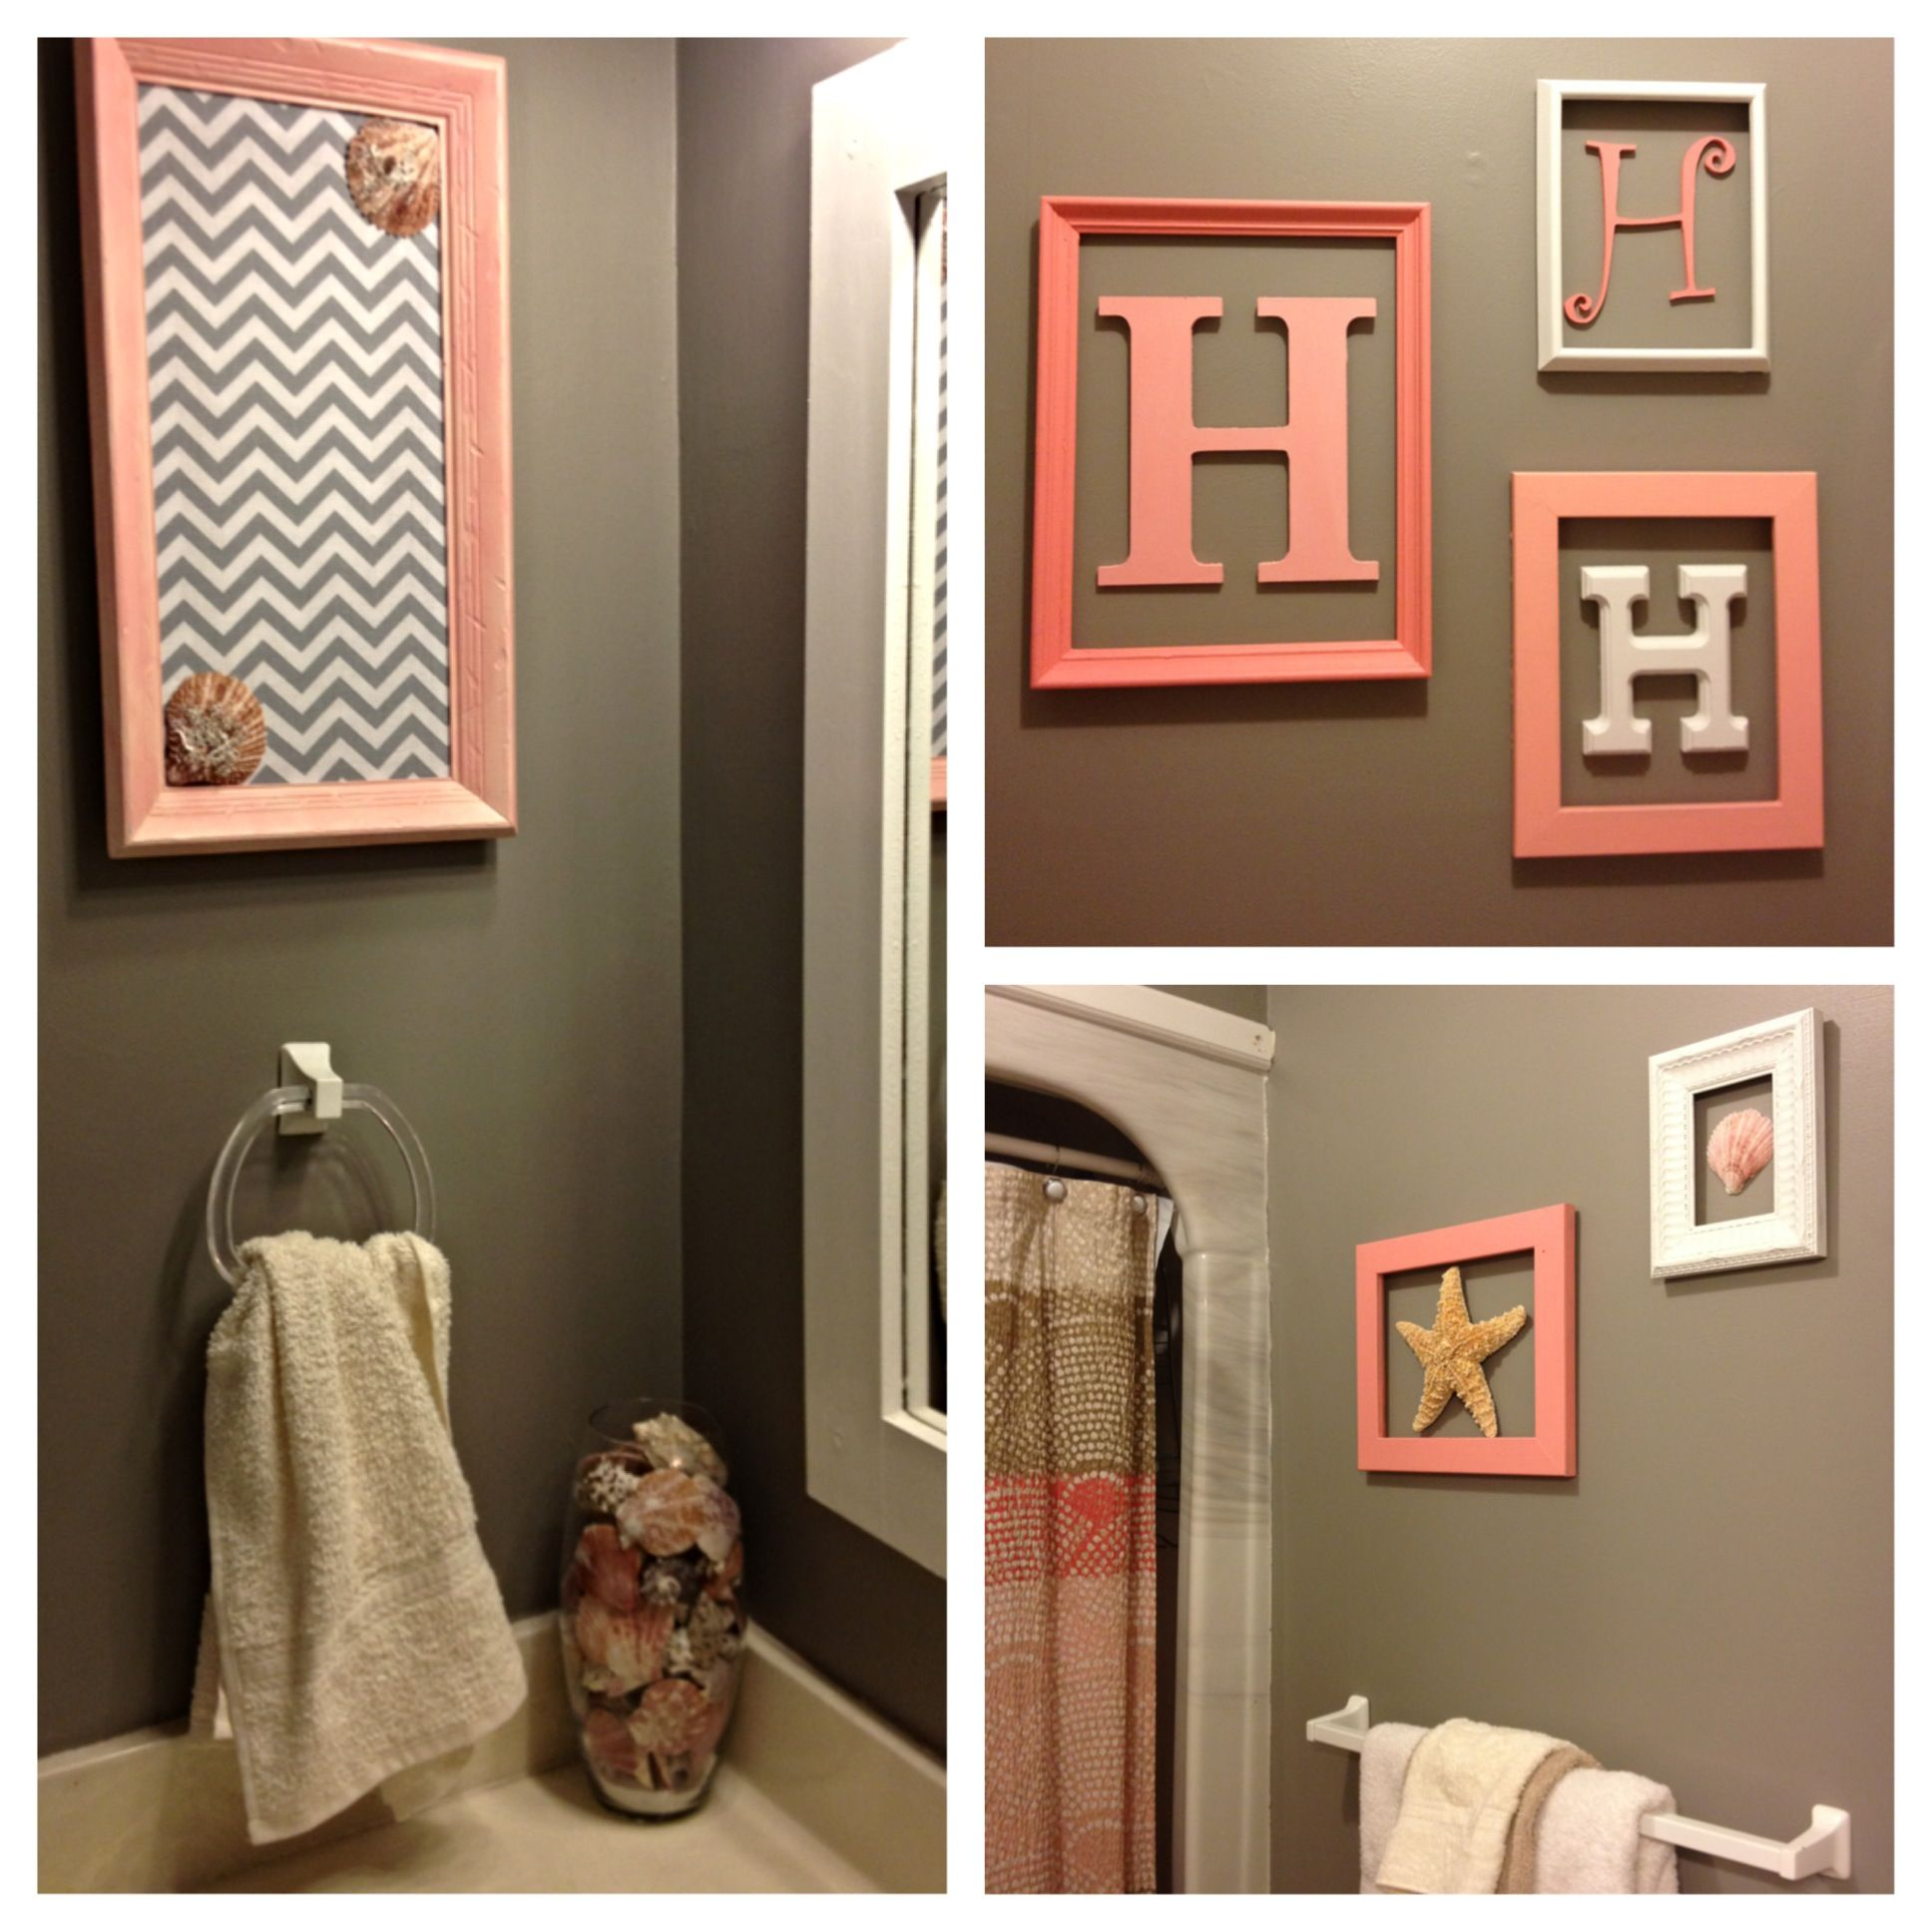 Our new beachy bathroom monogram wall pink tan grey for Pink and grey bathroom decor